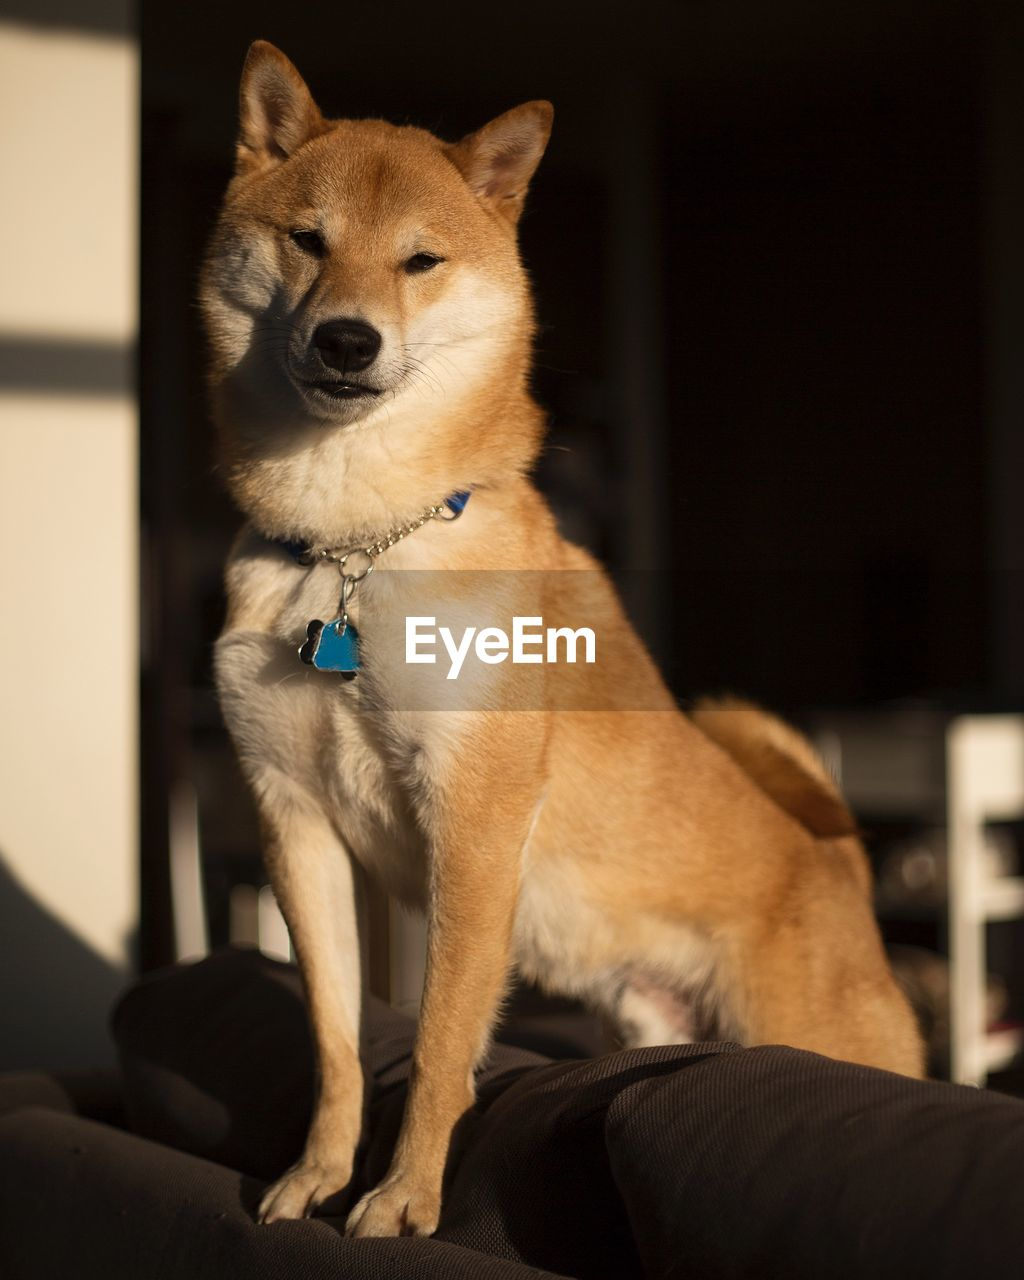 mammal, domestic animals, one animal, pets, dog, canine, domestic, vertebrate, sitting, no people, indoors, focus on foreground, relaxation, collar, pet collar, looking away, looking